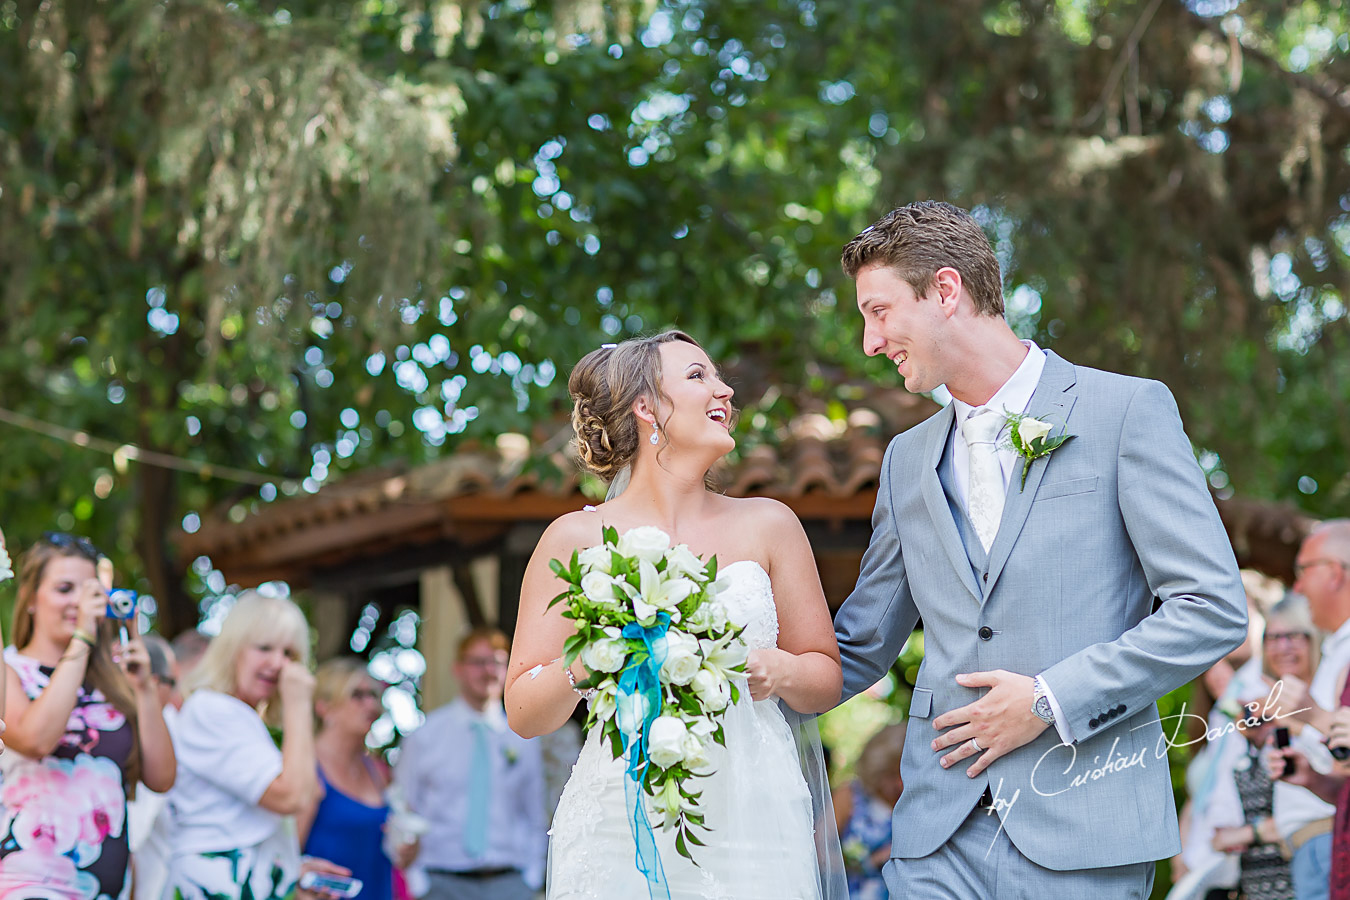 Wedding moments captured by Cristian Dascalu at Peyia Townhall.